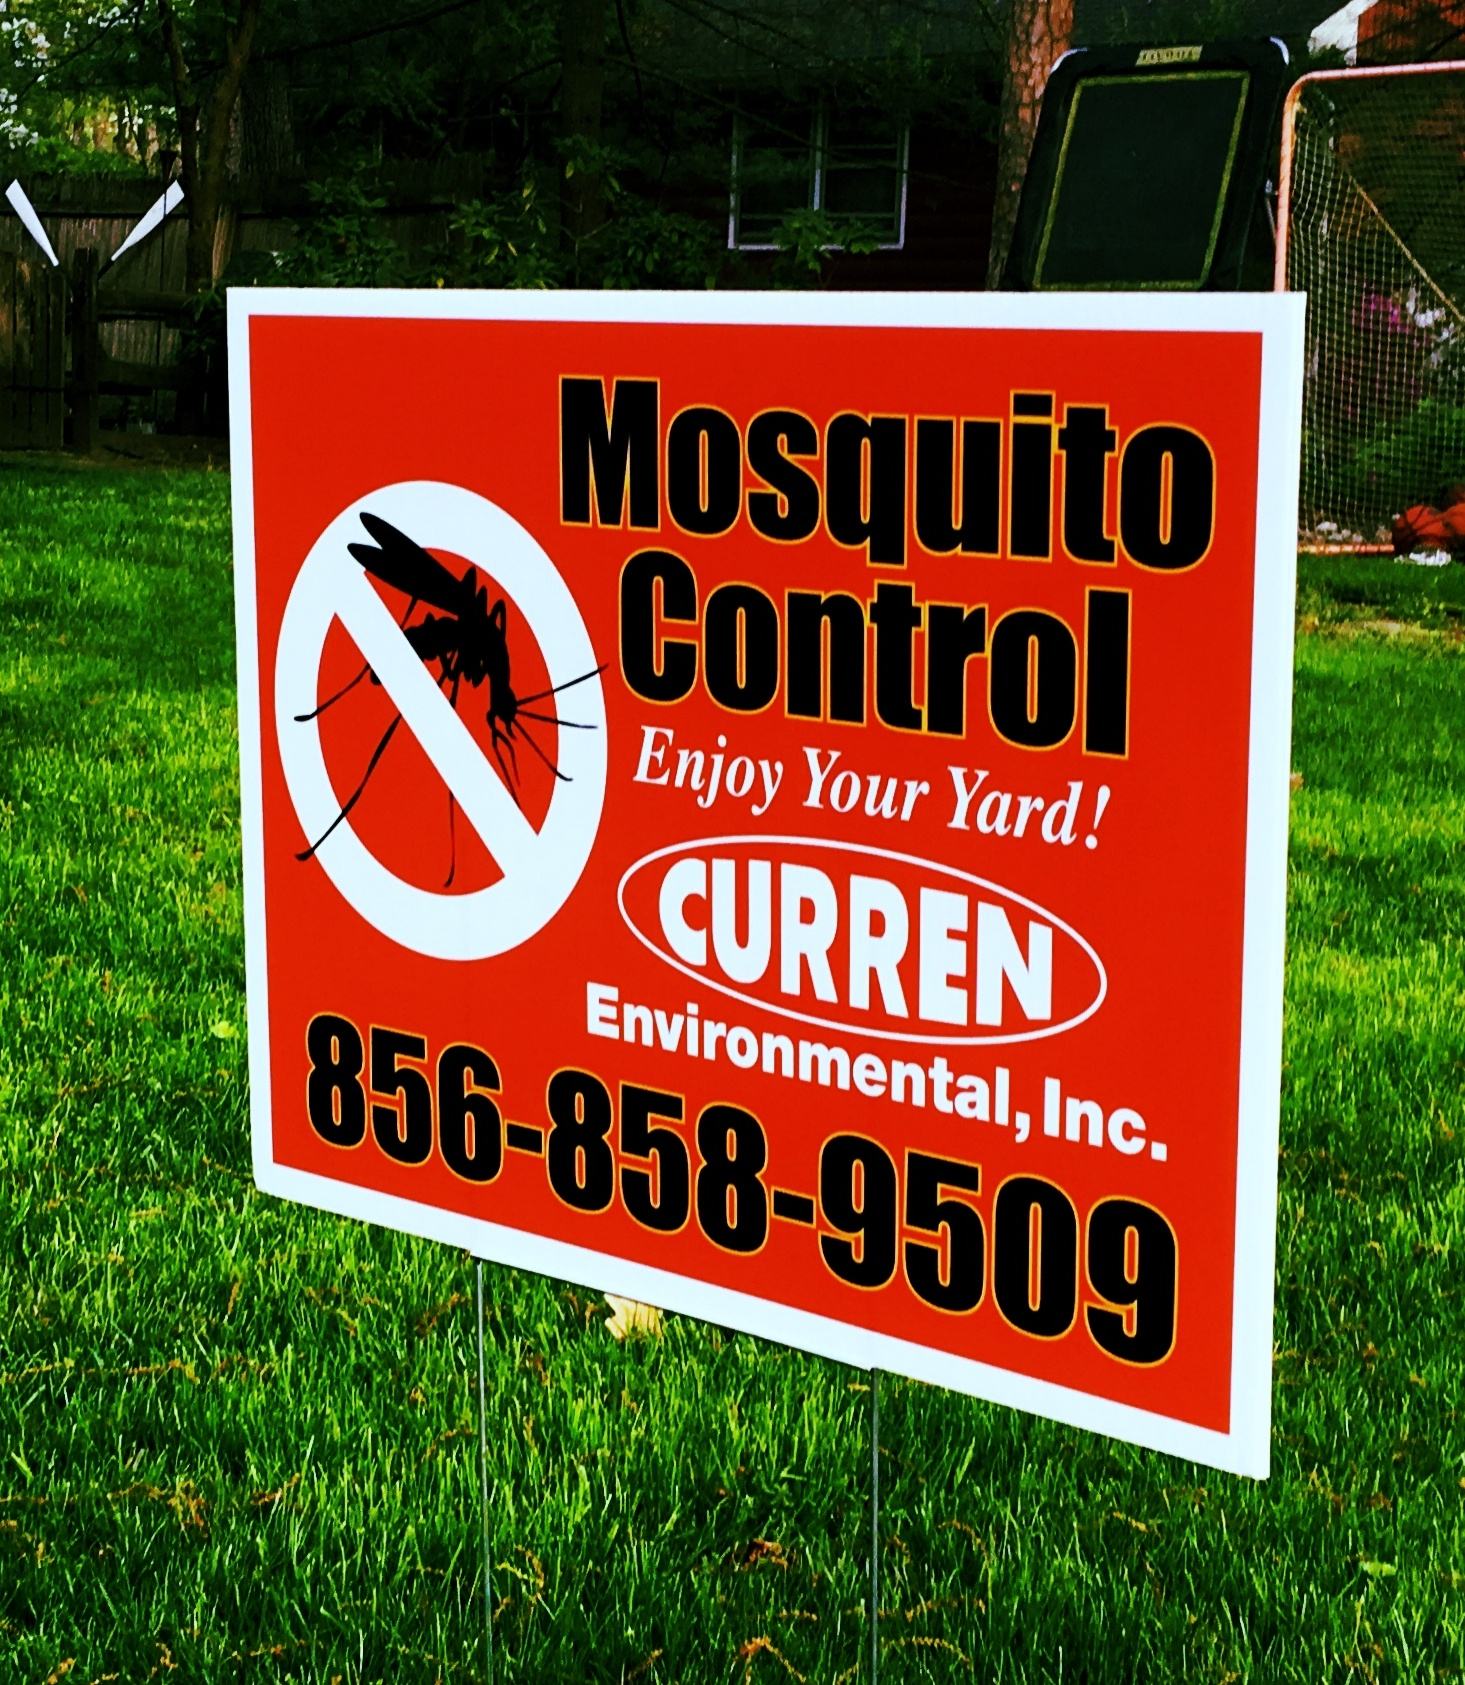 Mosquito Remediation-548160-edited.jpg